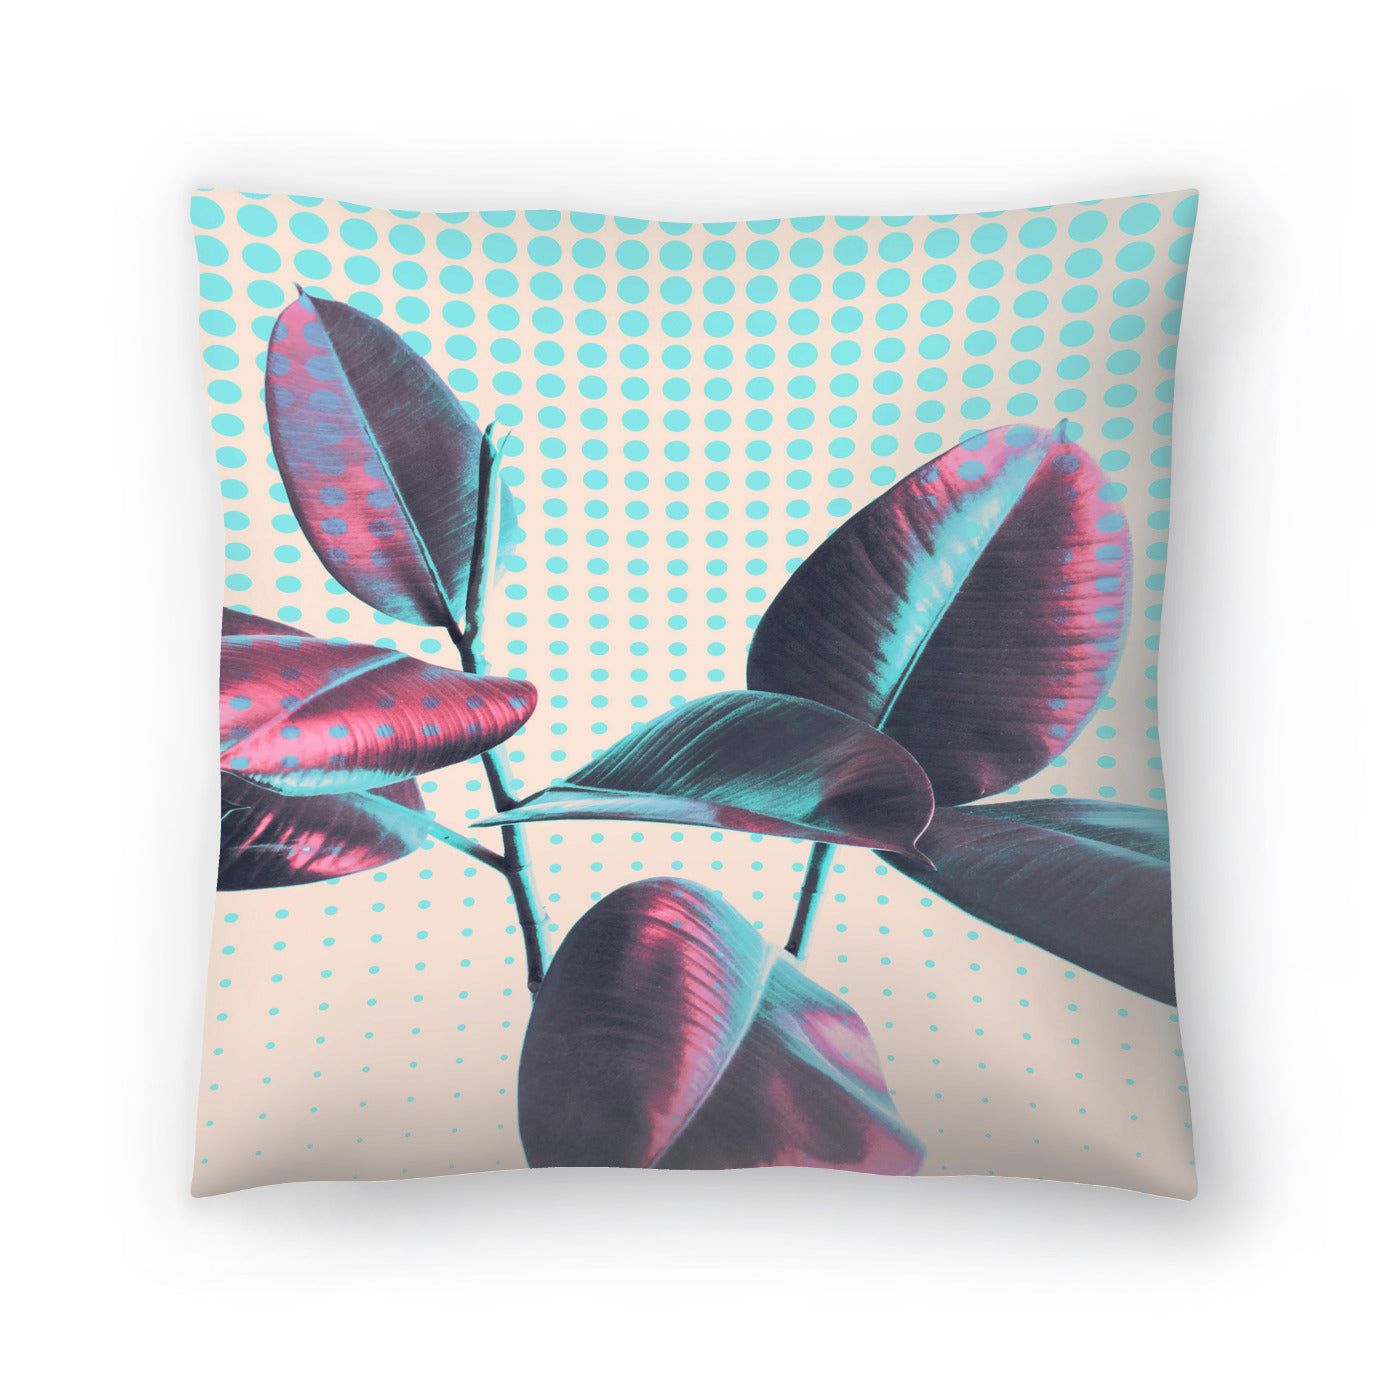 Leaves On Polka Dots by Emanuela Carratoni Decorative Pillow - Decorative Pillow - Americanflat